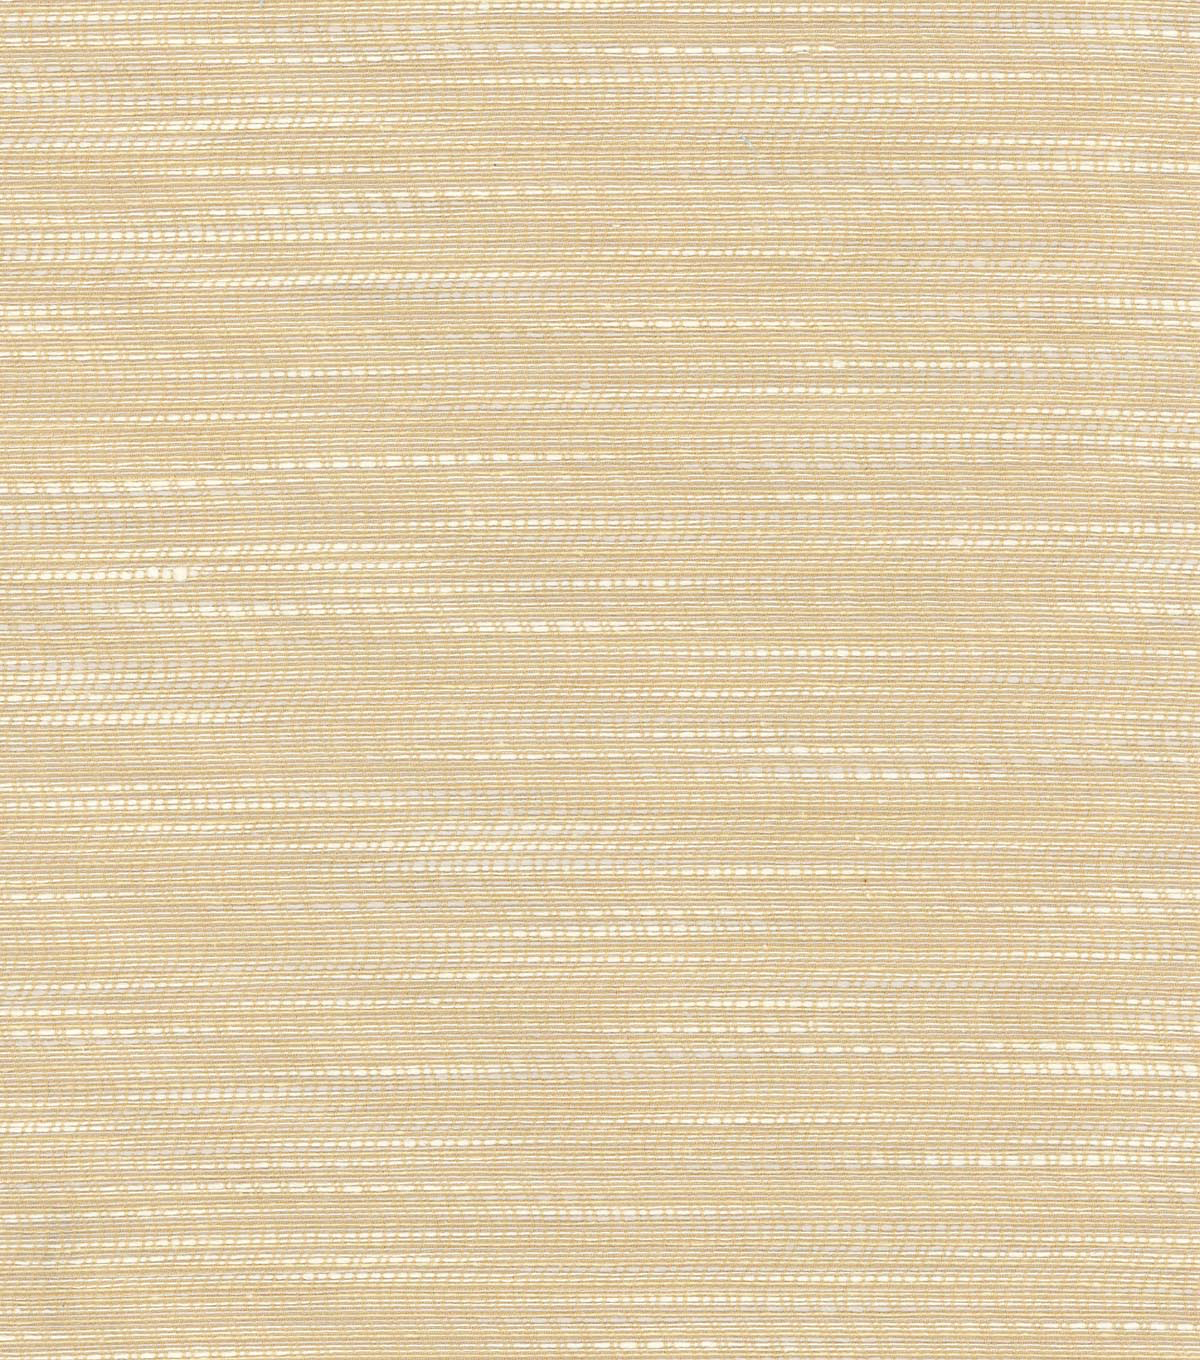 "Home Decor 8""x8"" Swatch Fabric-PK Lifestyles Shimmy Almond"